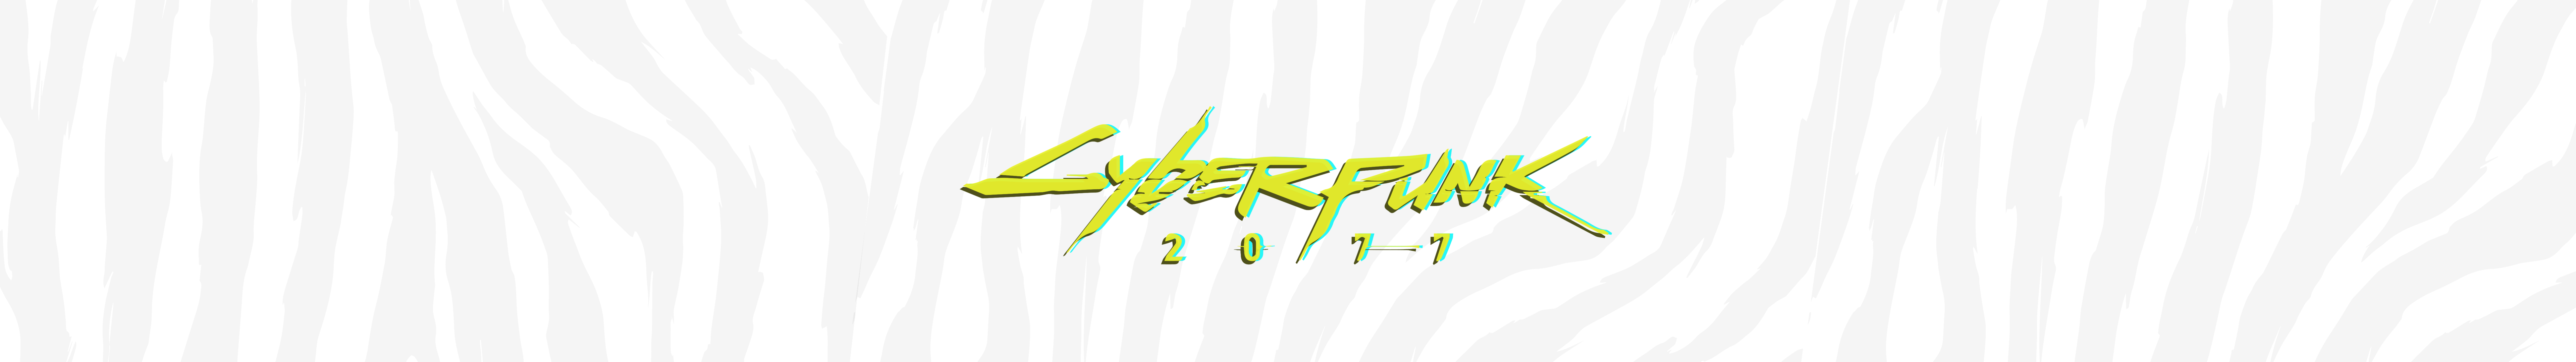 I Made These Cyberpunk 2077 Wallpapers Because I Couldnt Find Any